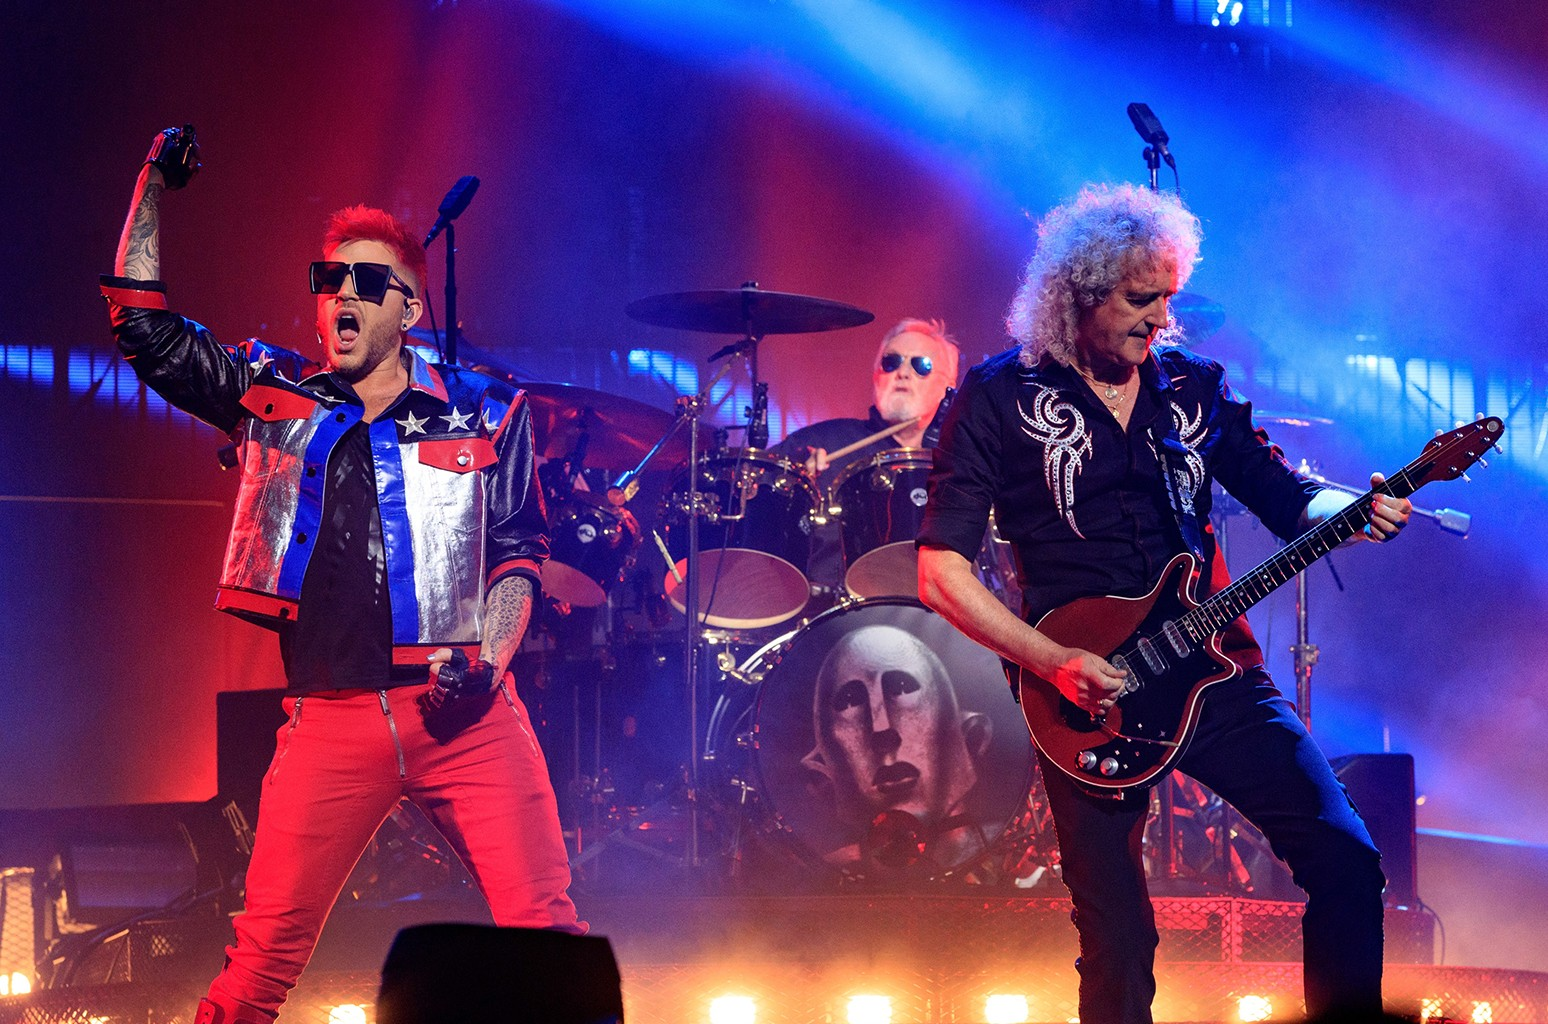 Queen and Adam Lambert perform during the North American Tour kickoff at Gila River Arena on June 23, 2017 in Glendale, Ariz.